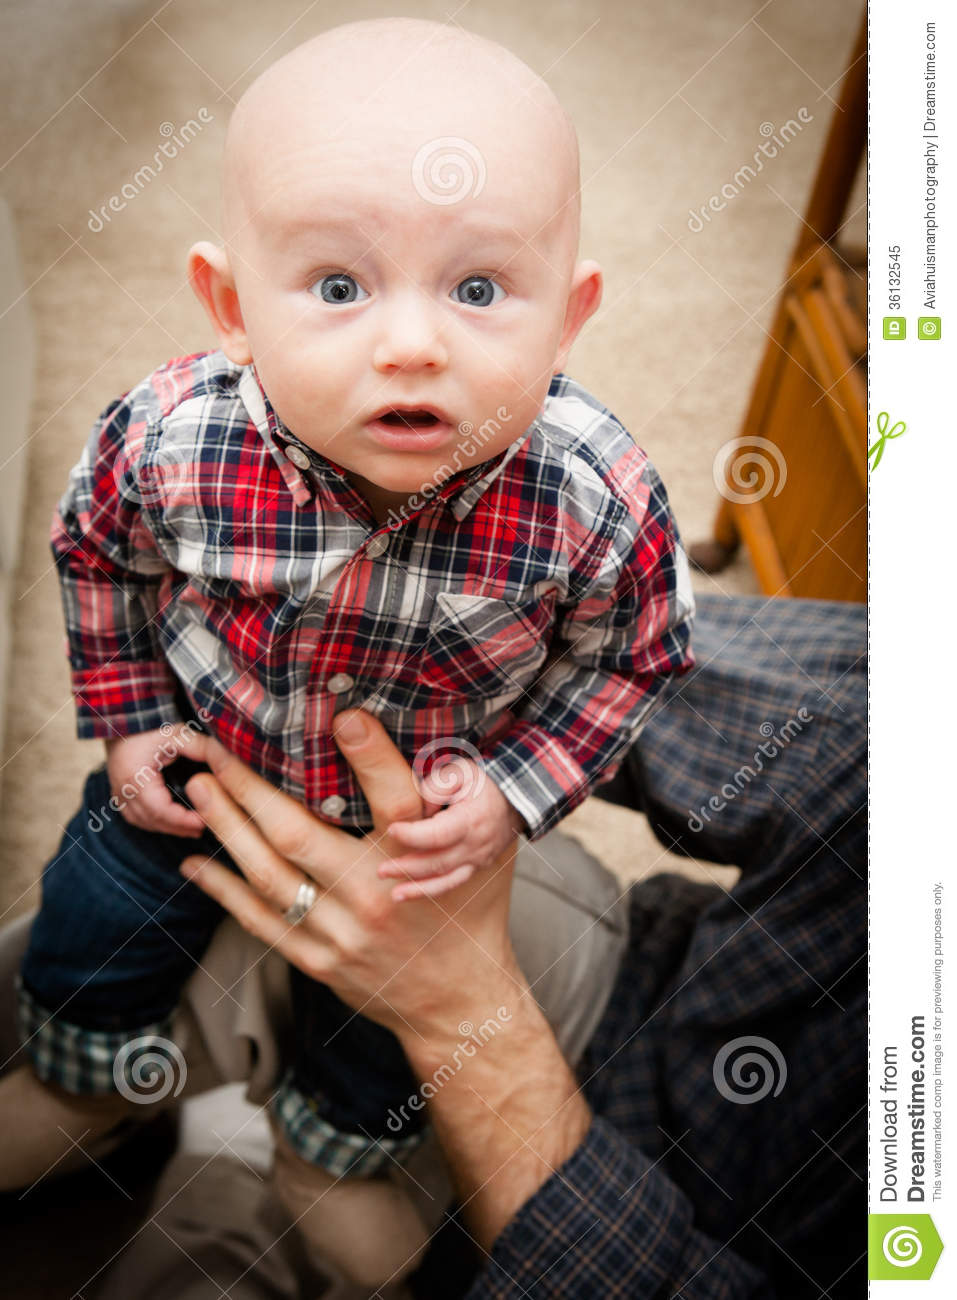 adorable bald baby boy with big blue eyes royalty free stock photo image 36132545. Black Bedroom Furniture Sets. Home Design Ideas